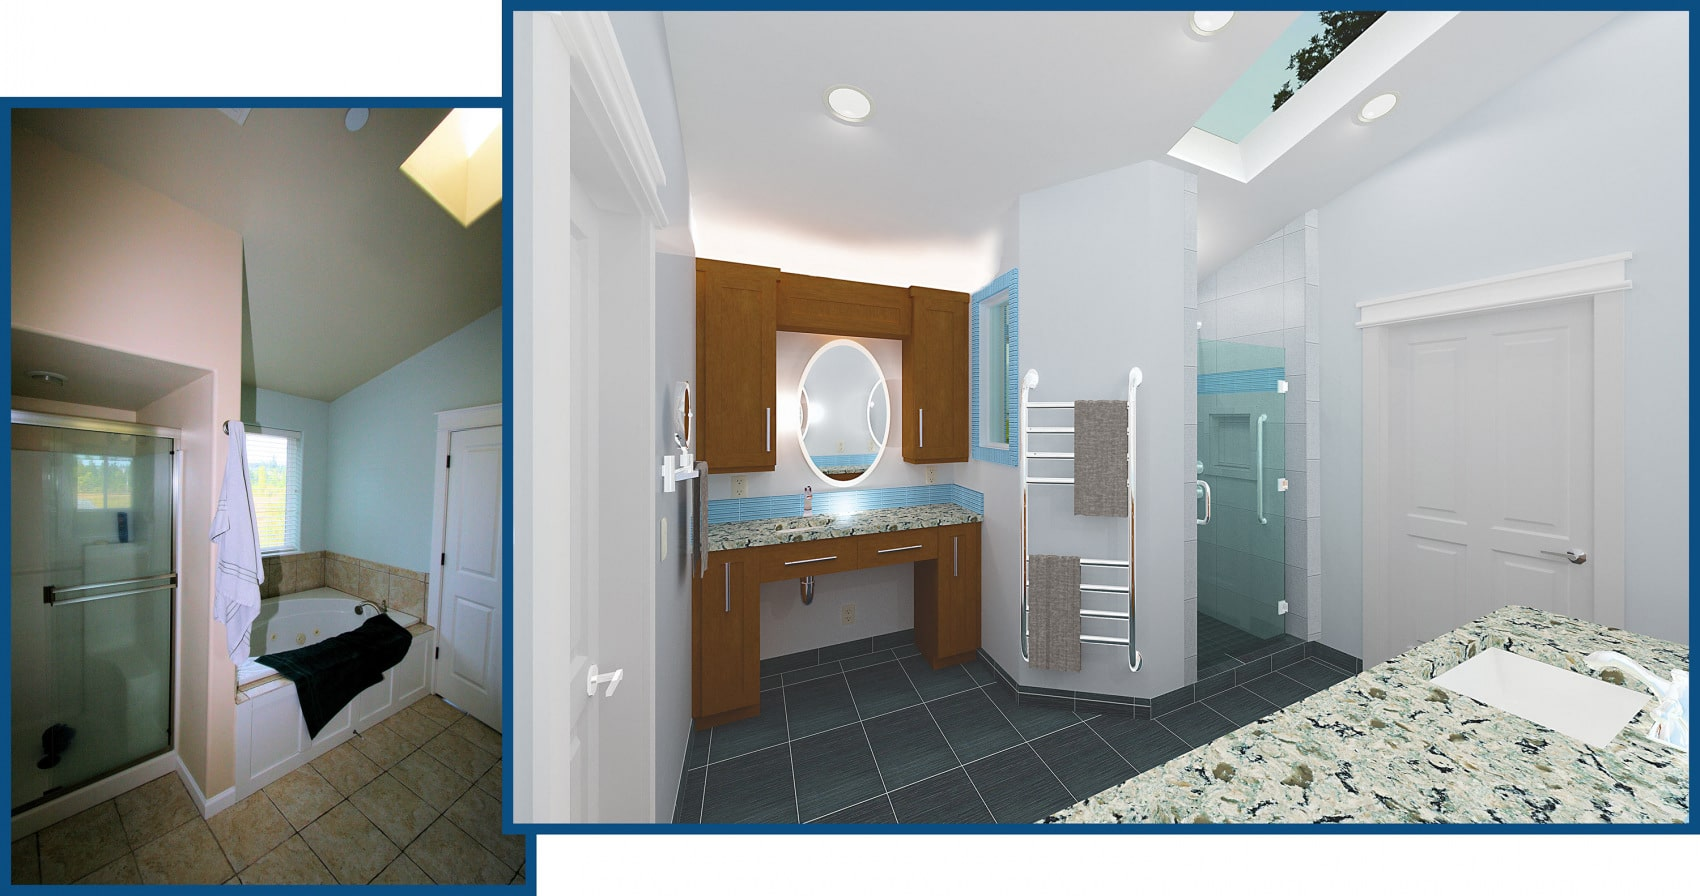 Master Bathroom (View 2):  Custom Grooming Area and Shower